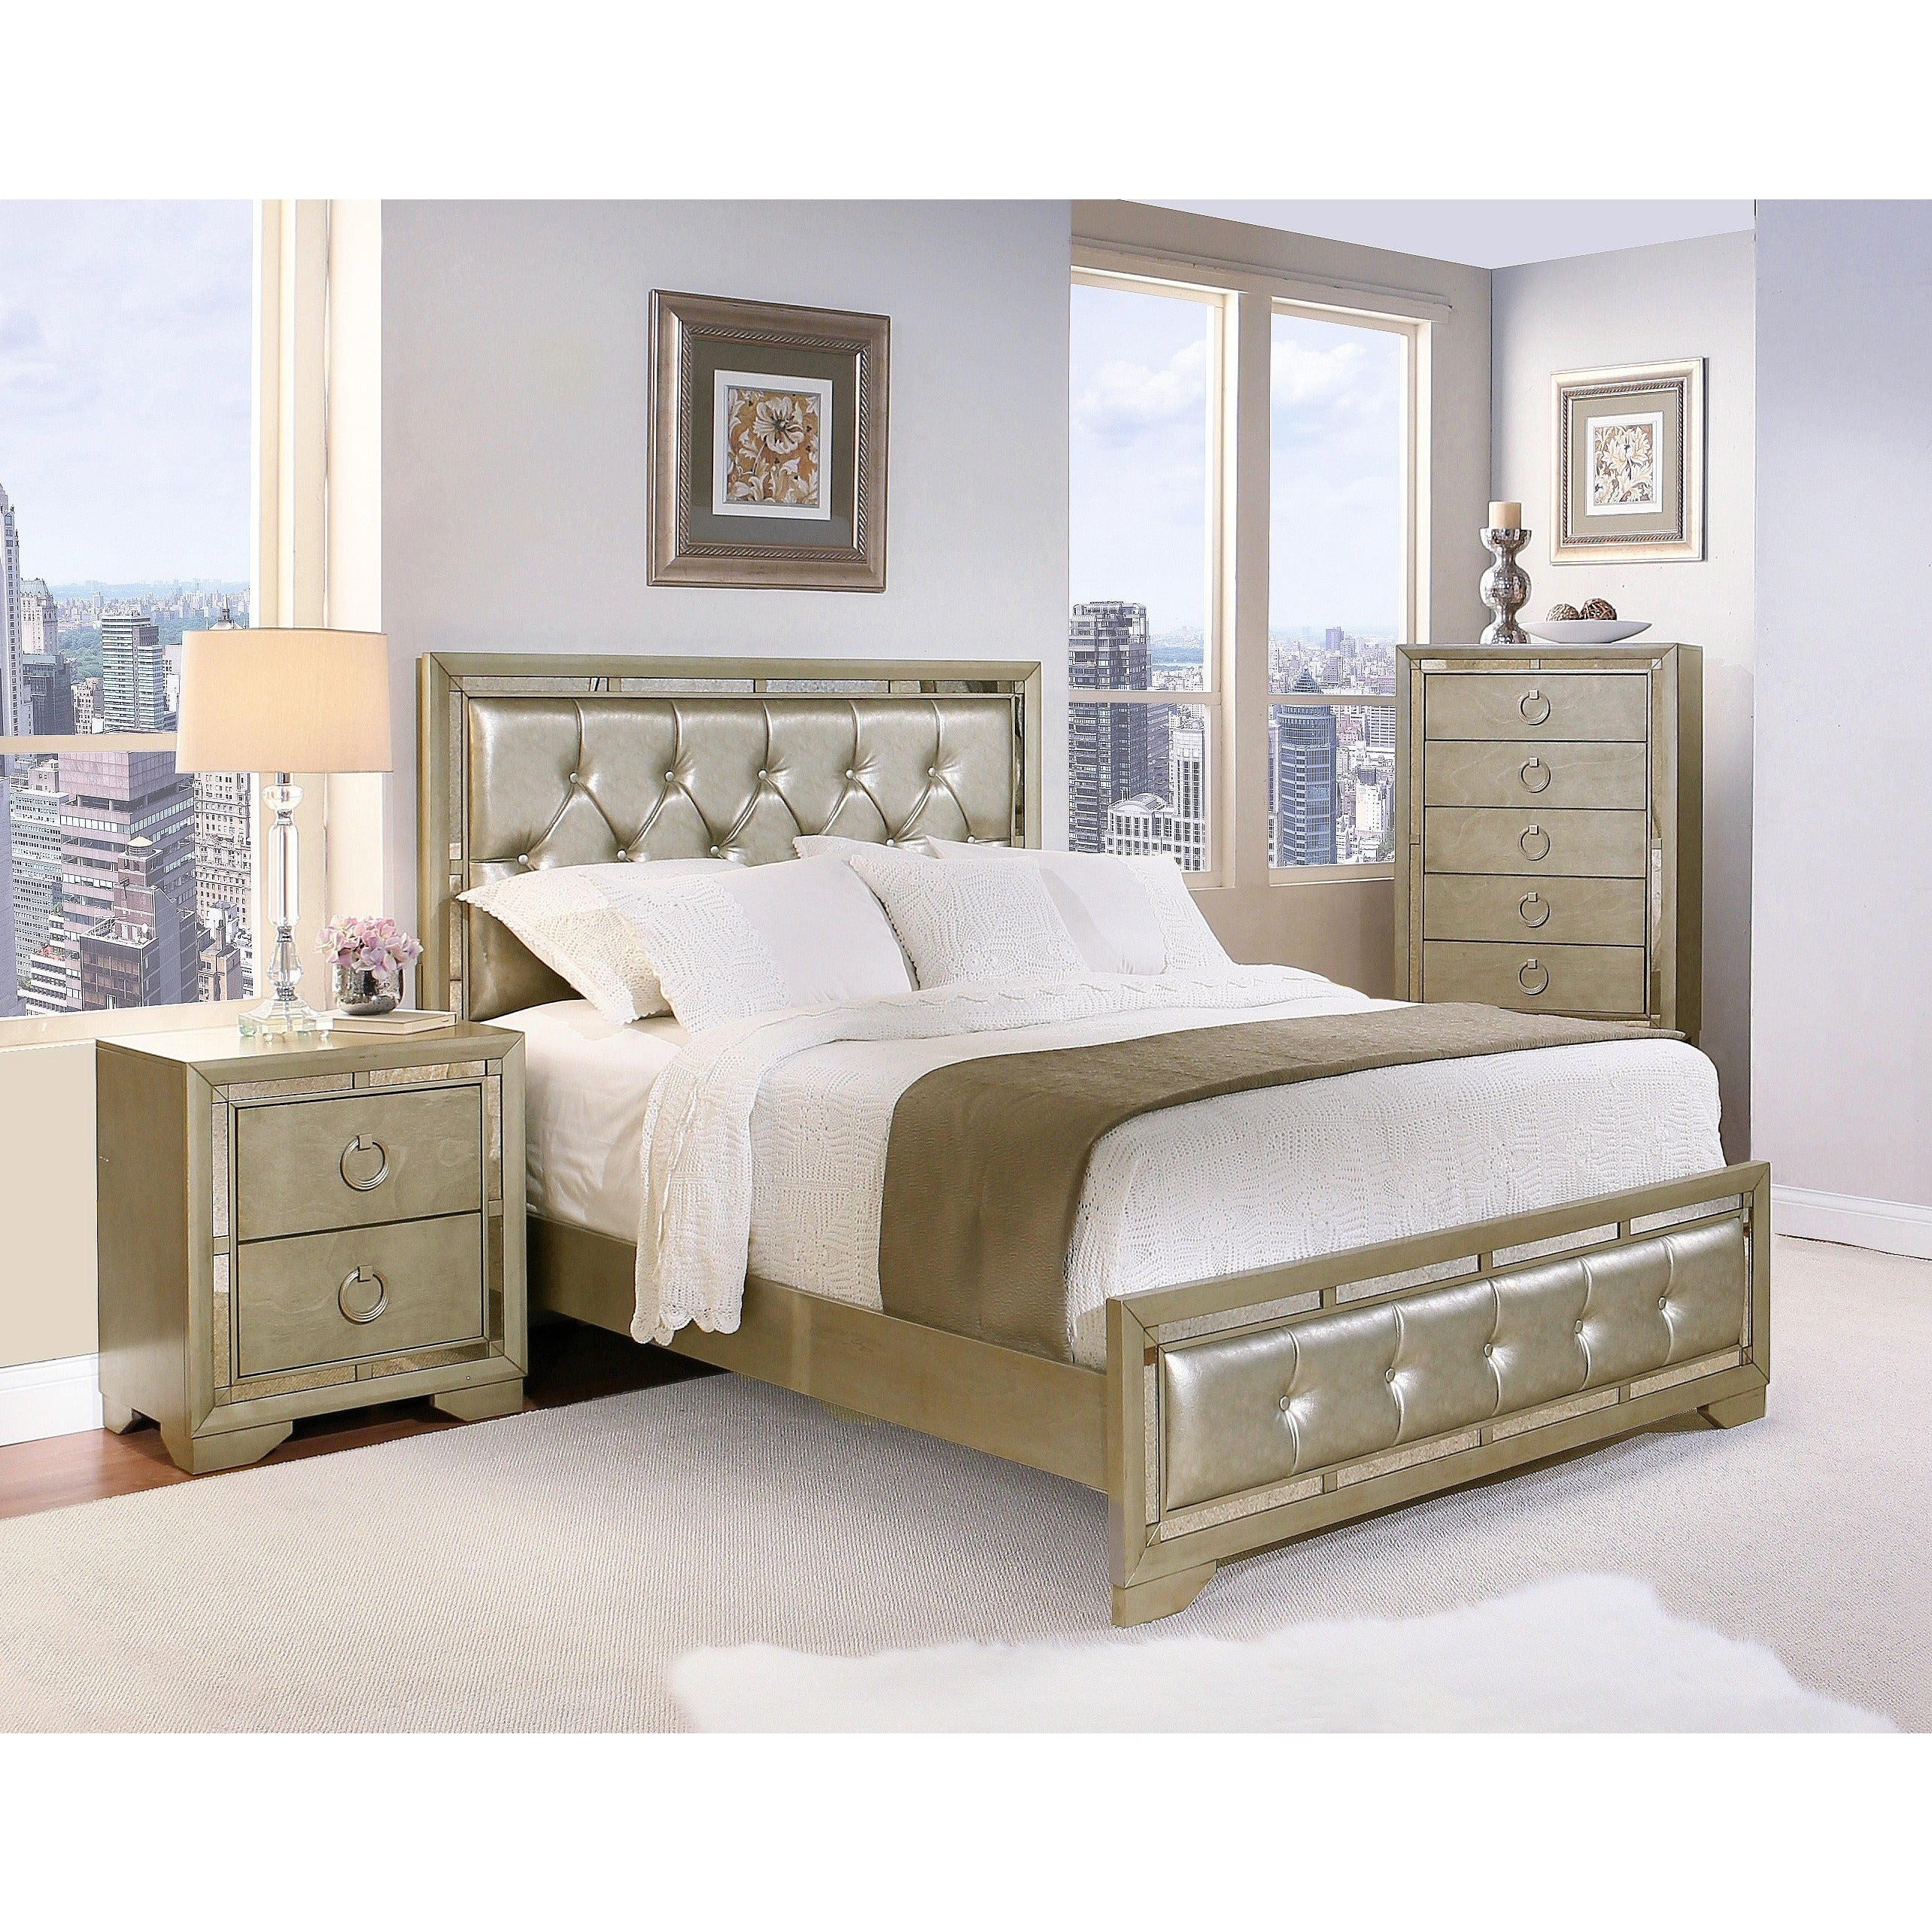 Picture of: Shop Abbyson Valentino Mirrored And Leather Tufted 4 Piece California King Size Bedroom Set Overstock 11806193